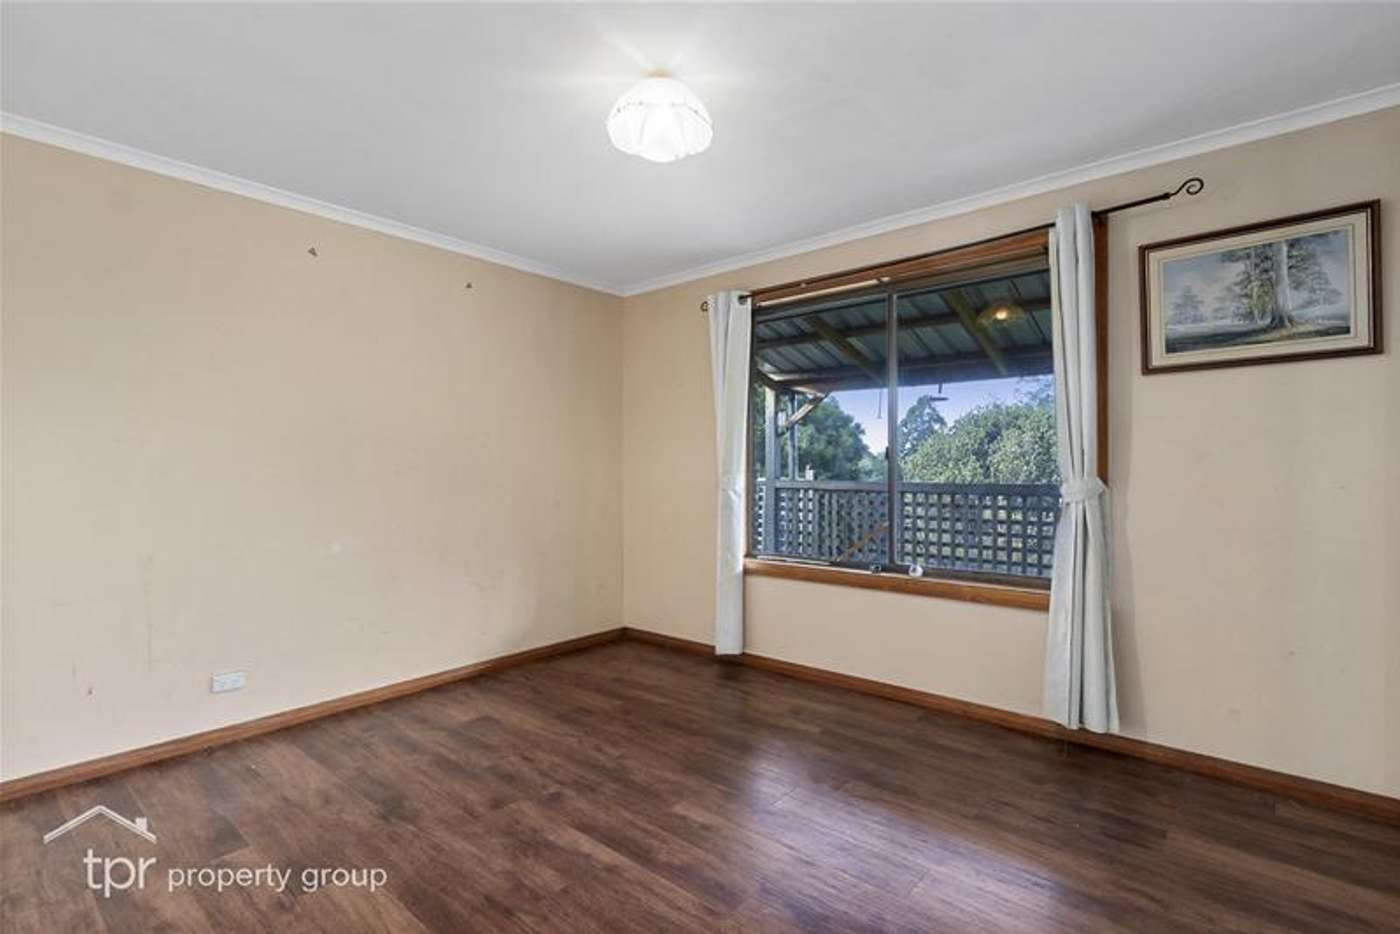 Sixth view of Homely house listing, 82 Hankin Robertson Road, Geeveston TAS 7116